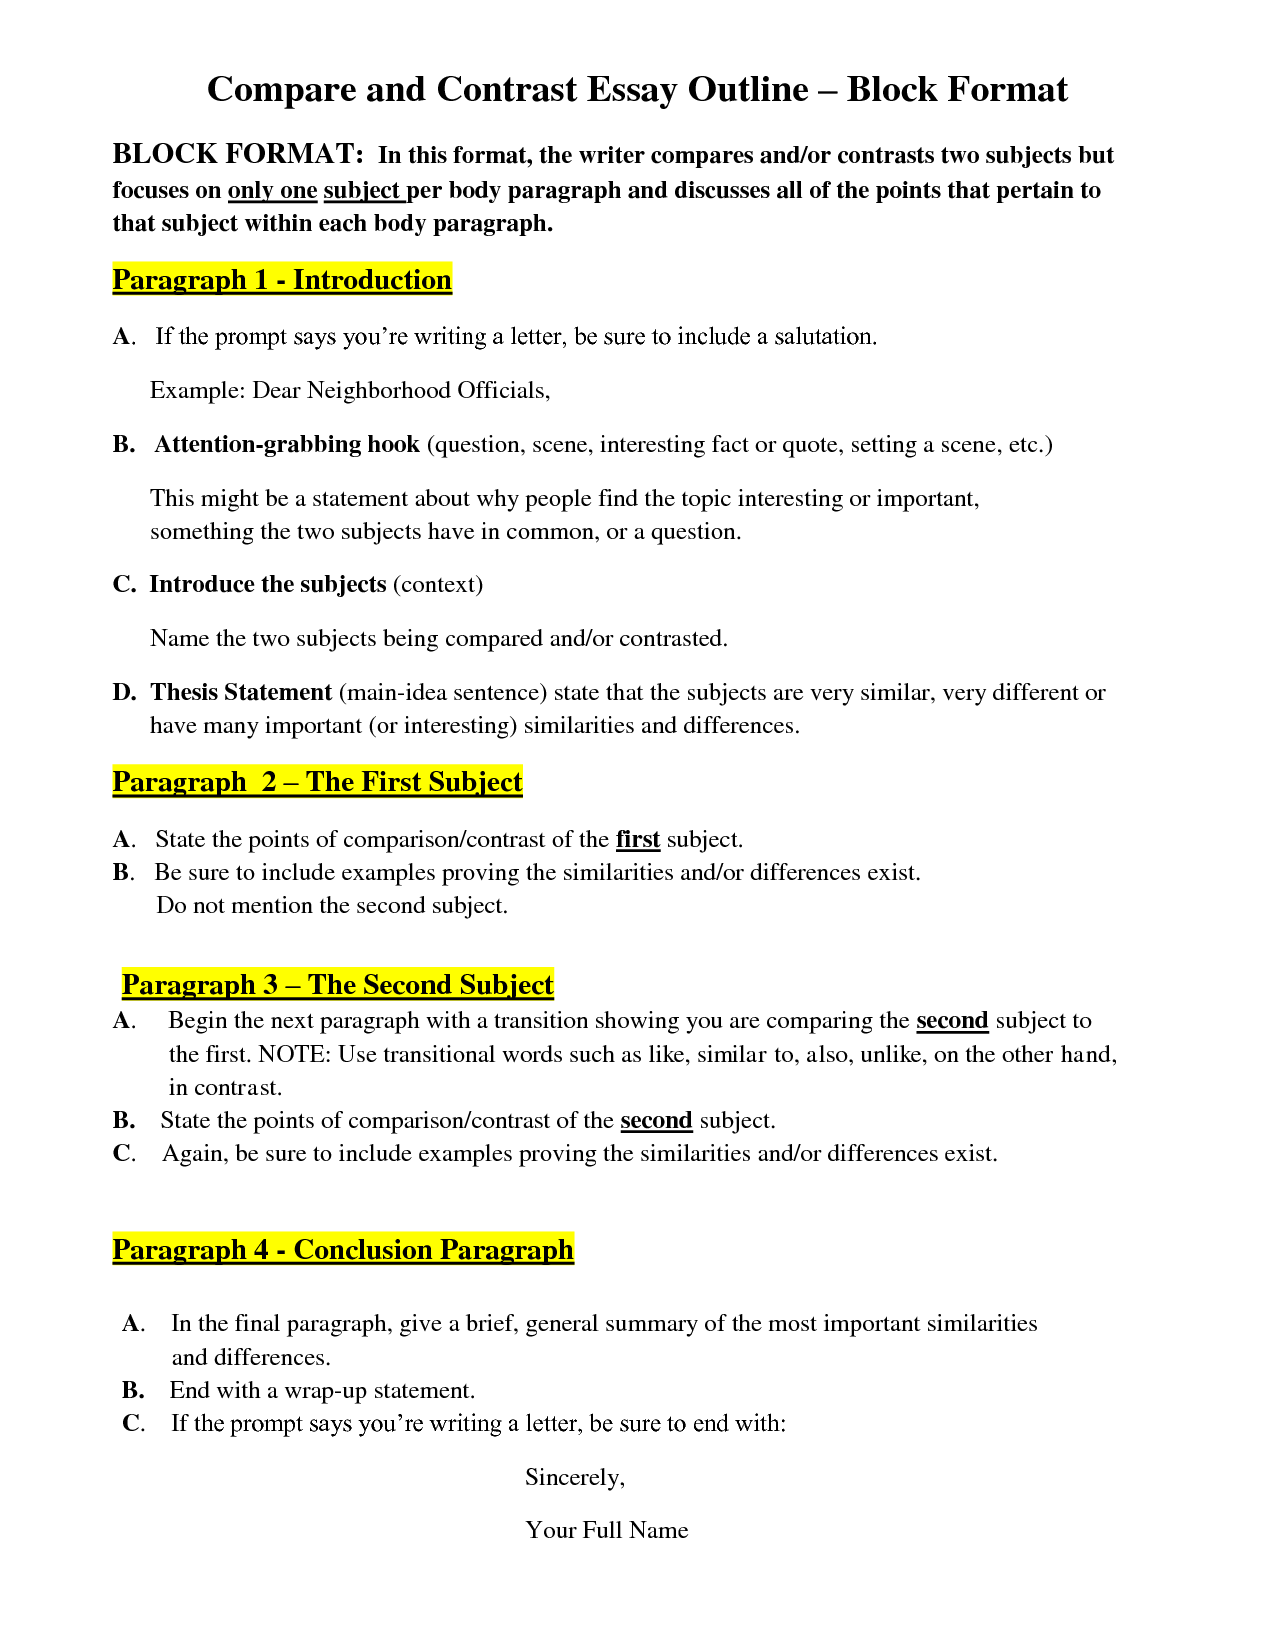 003 Compare And Contrast Essay Structure Stupendous Ppt Format Outline Full